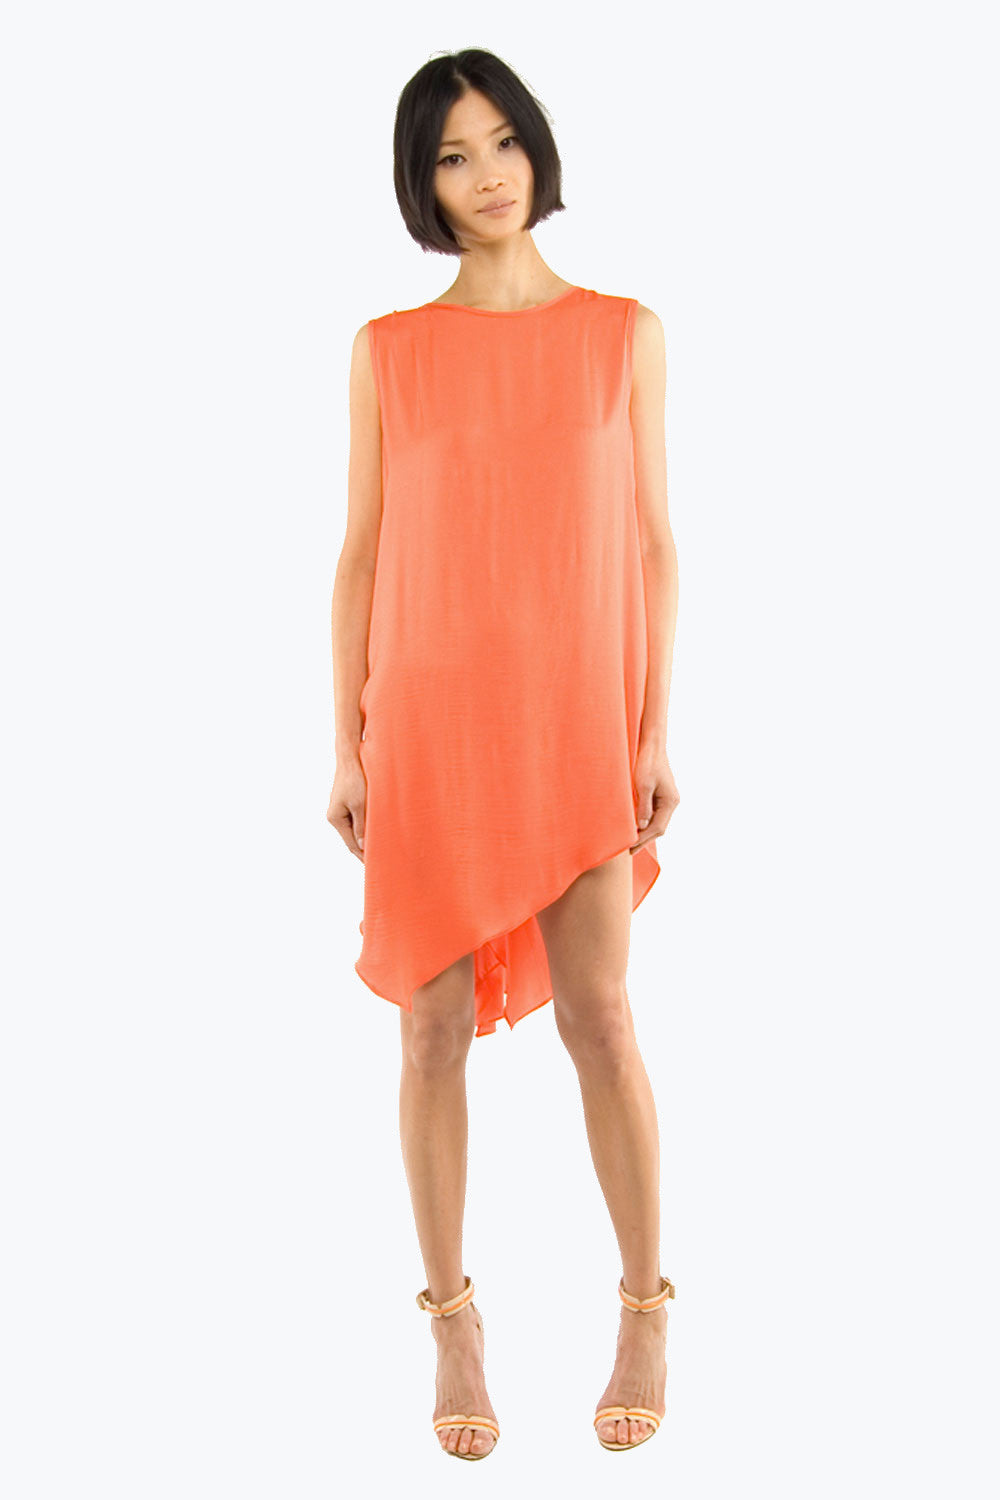 Torus Dress - Primary New York